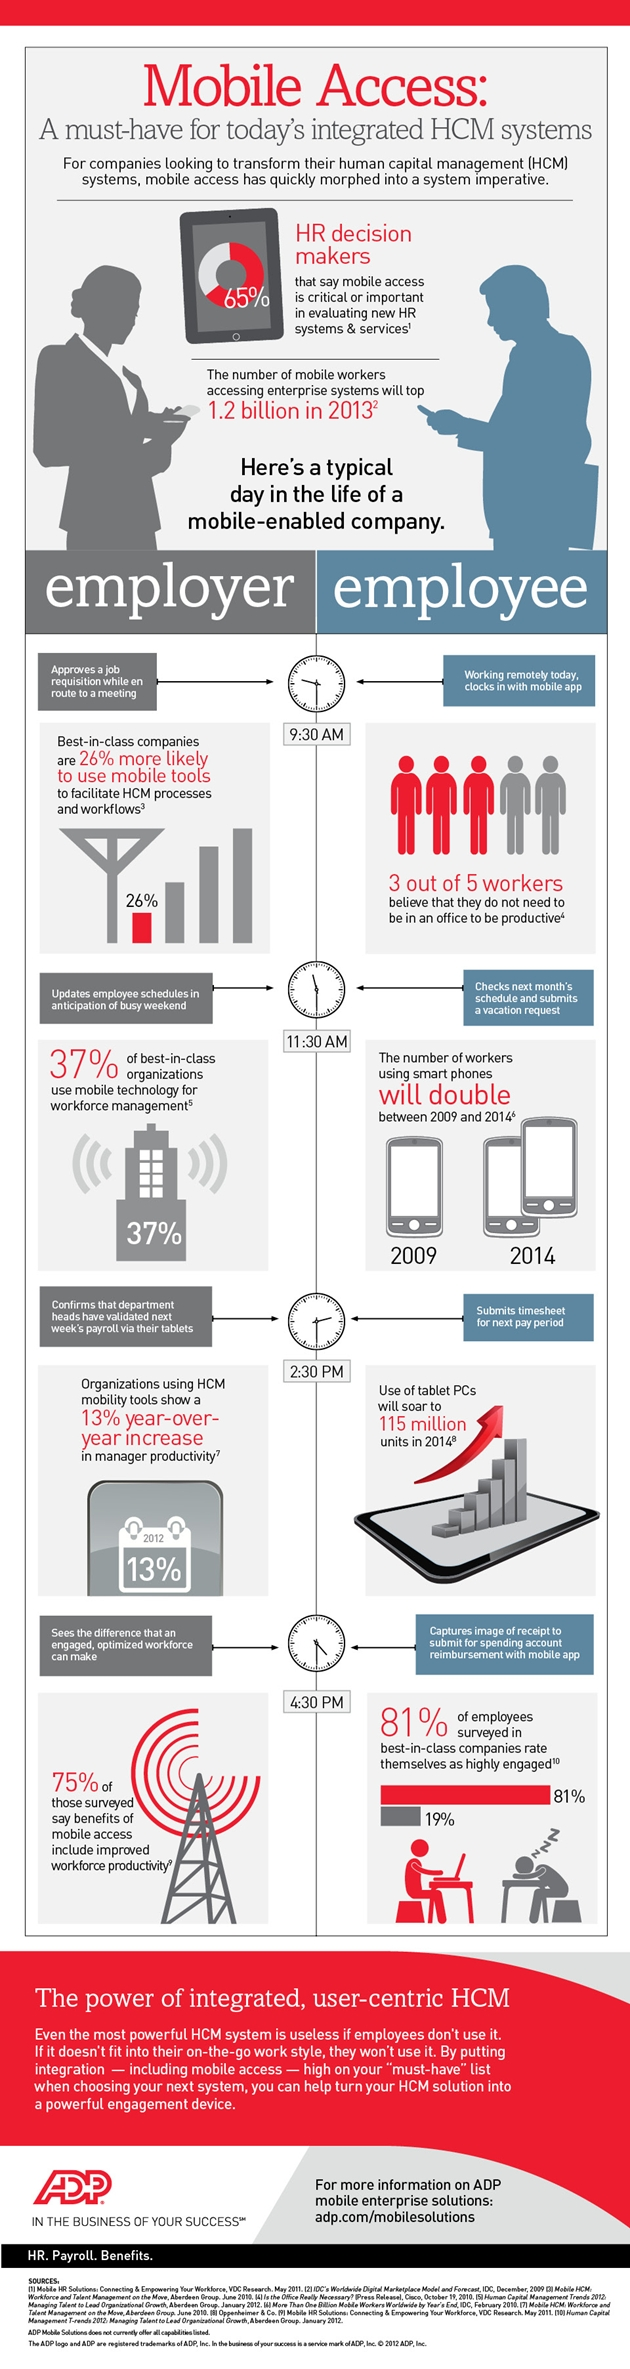 Mobile Access A Musthave for Today's Workforce